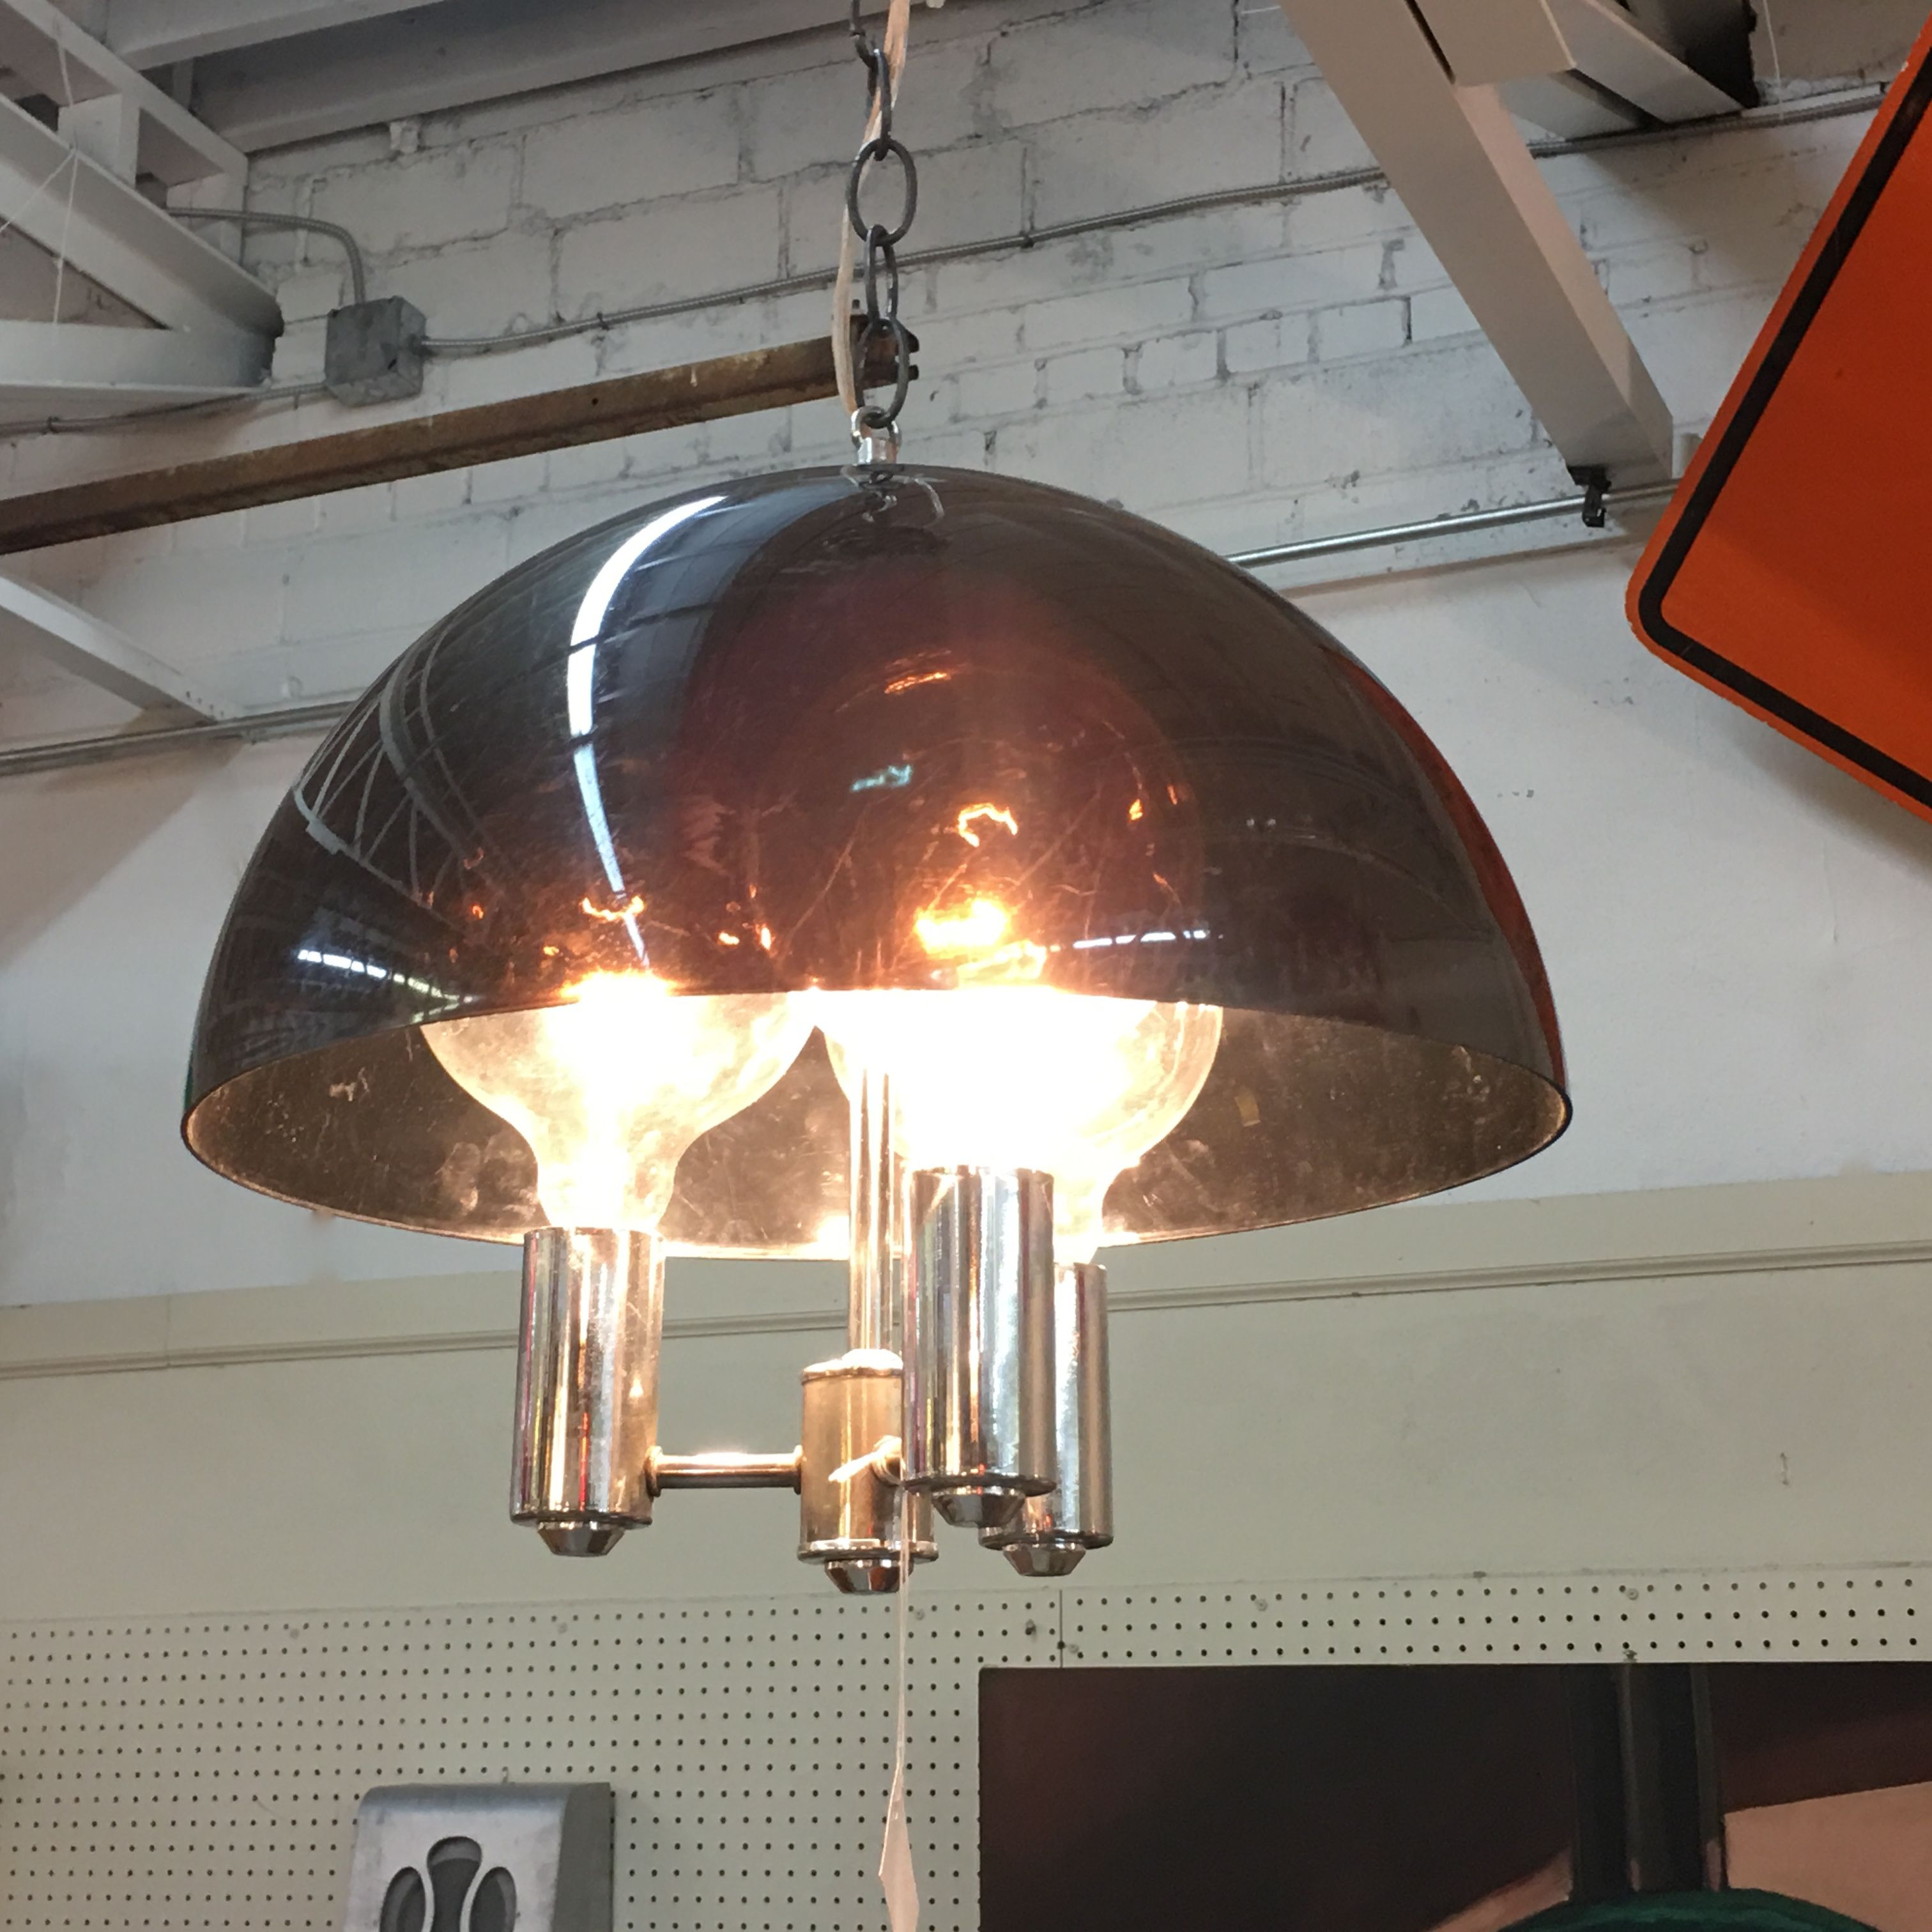 1960s Swag Lamp New Wiring 110 Mid Century Dallas Booth 766 Lula A Gas Bs 1010 N